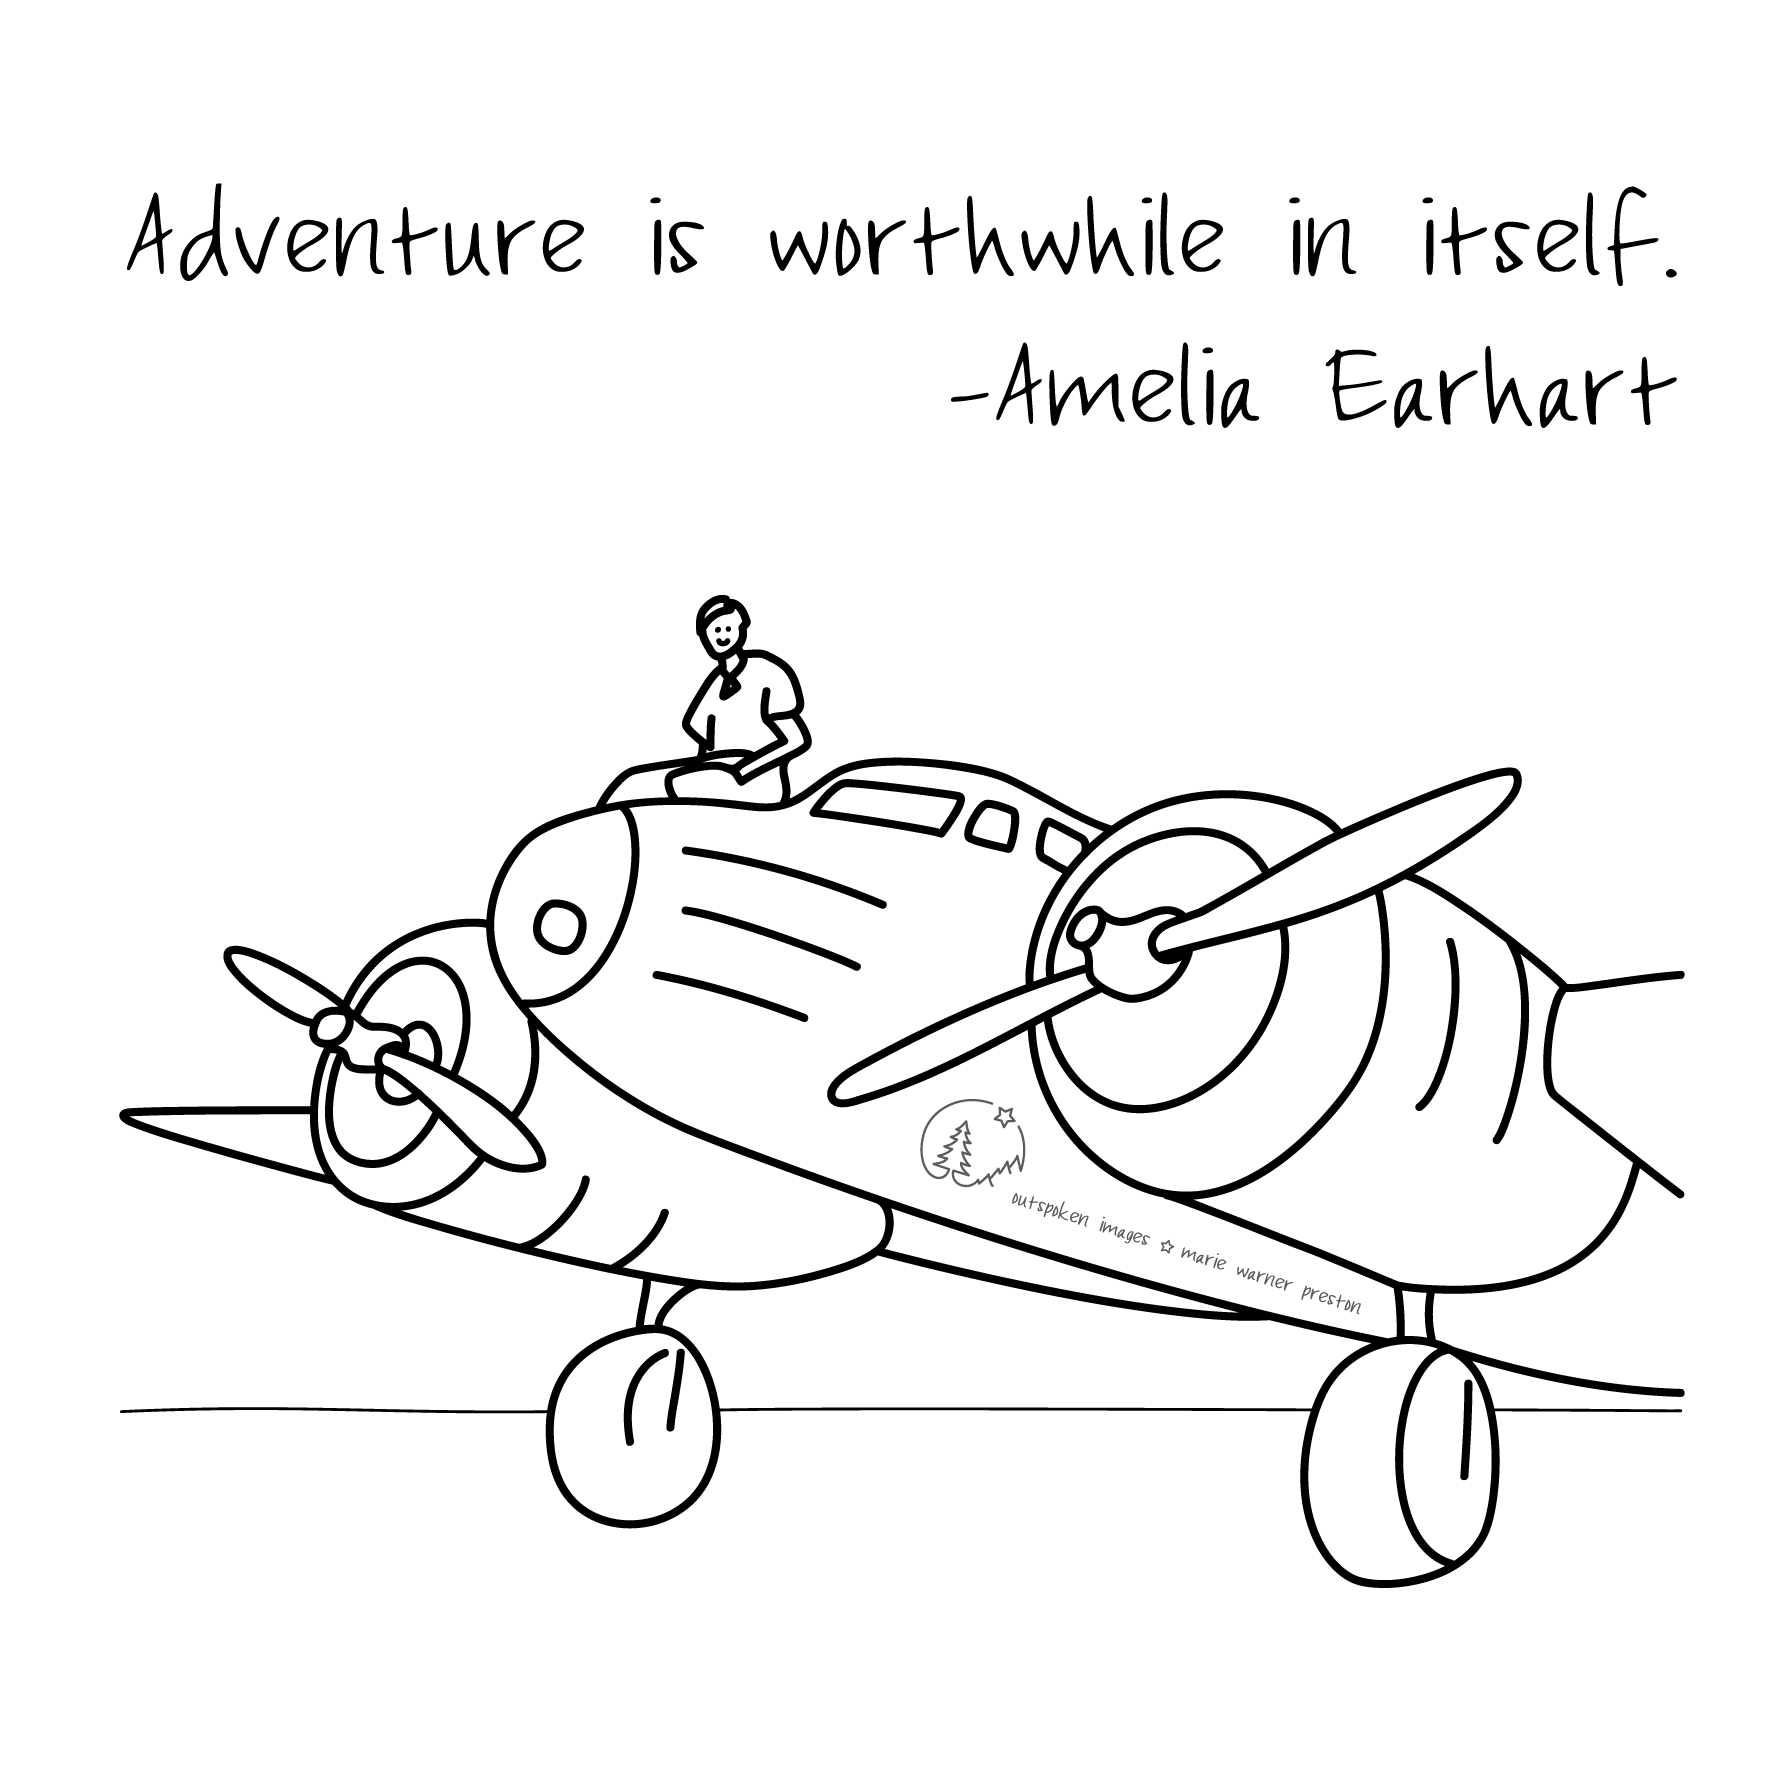 «Adventure is worthwhile in itself.» Amelia Earhart. Line drawing of Amelia Earhart sitting on her twin engine Lockheed Electra plane the day she made her second attempt to circle the equator. Based on a photo from The Miami Herald via Associated Press (AP). ©2021 Outspoken Images by Marie Warner Preston